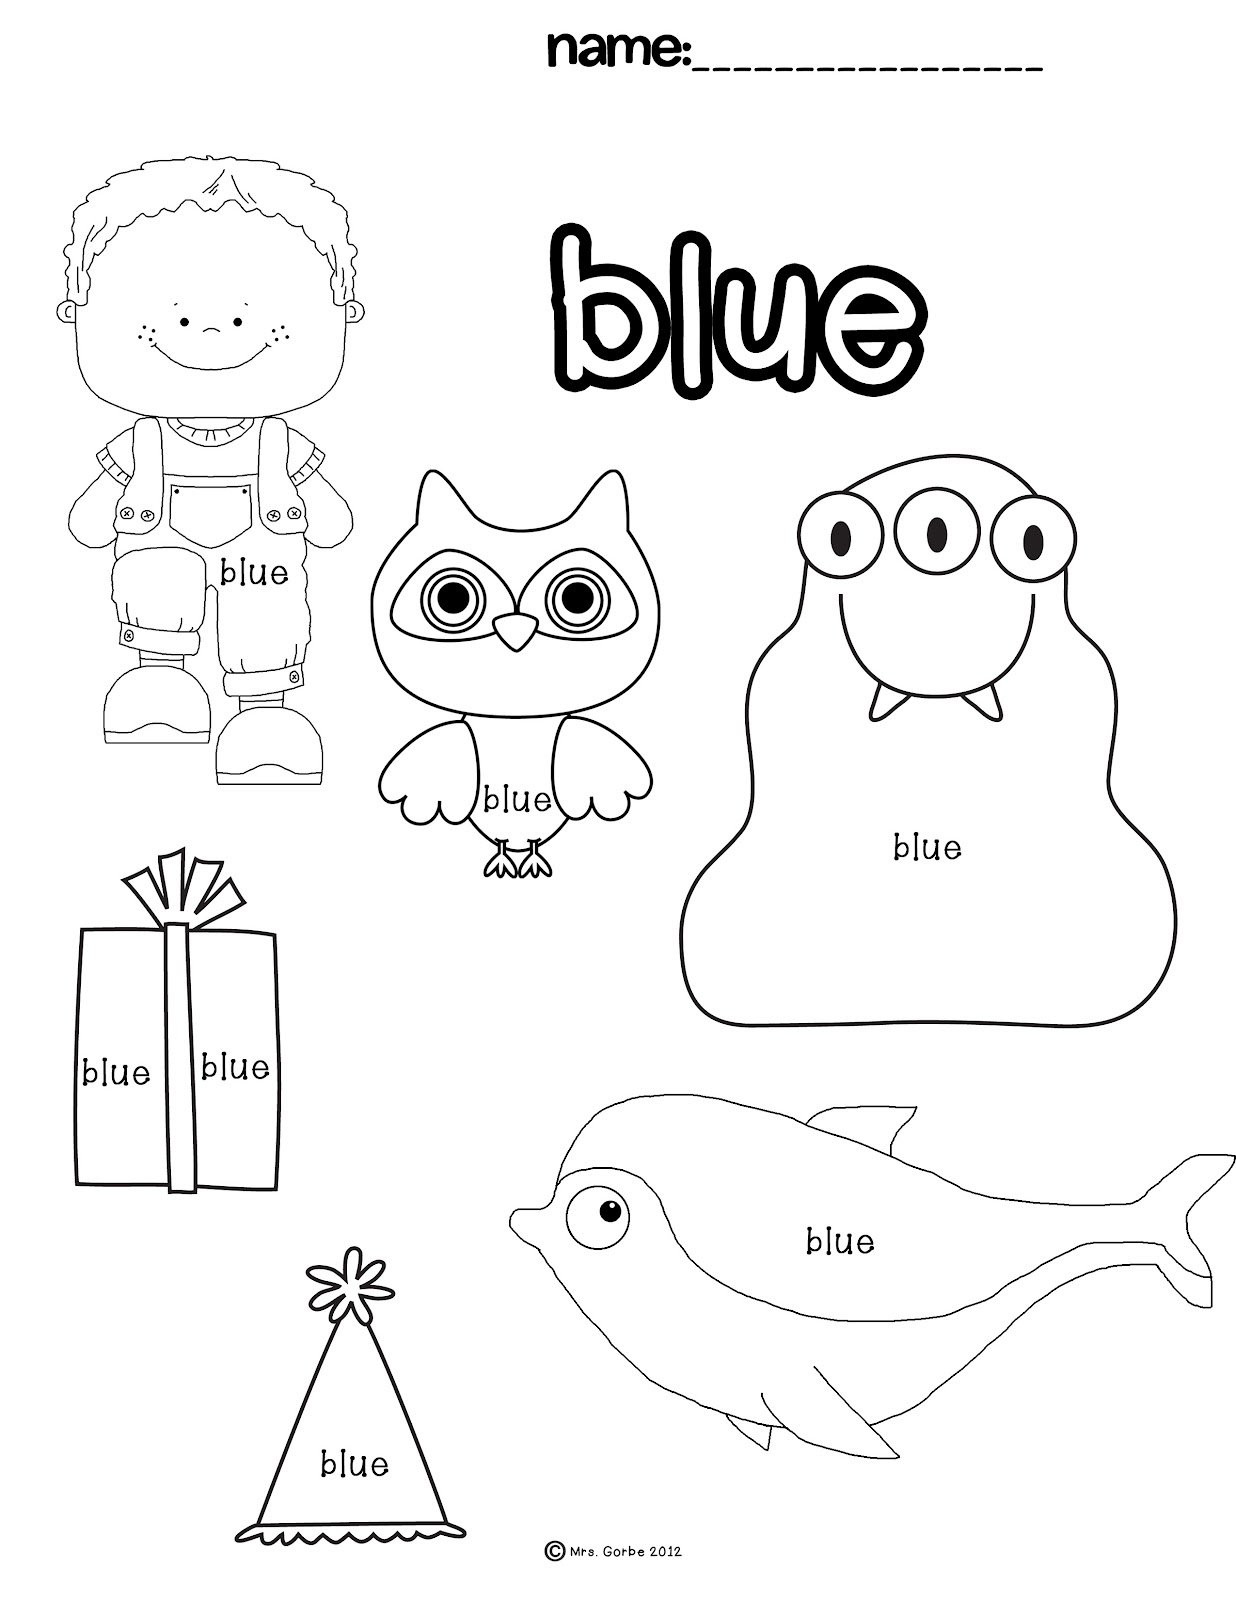 Color Blue Worksheets for Preschool Preschool Liquid Worksheet